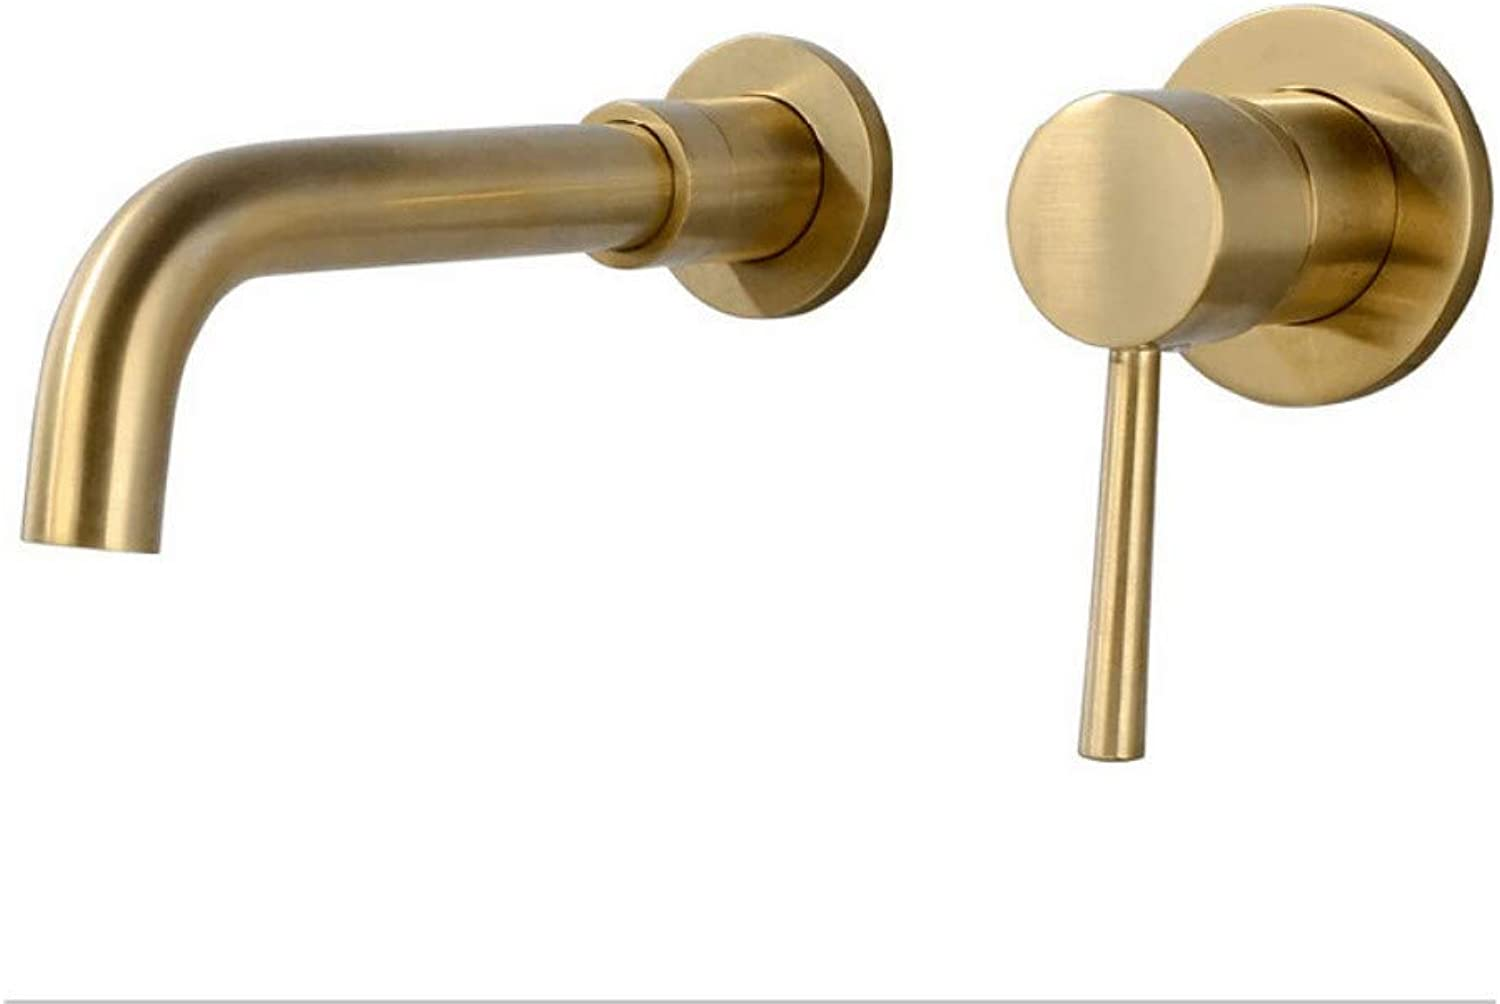 Taps Faucet Concealed Brushed gold color Hot and Cold Water Basin Faucet Split Separation Faucet with redating Nozzle